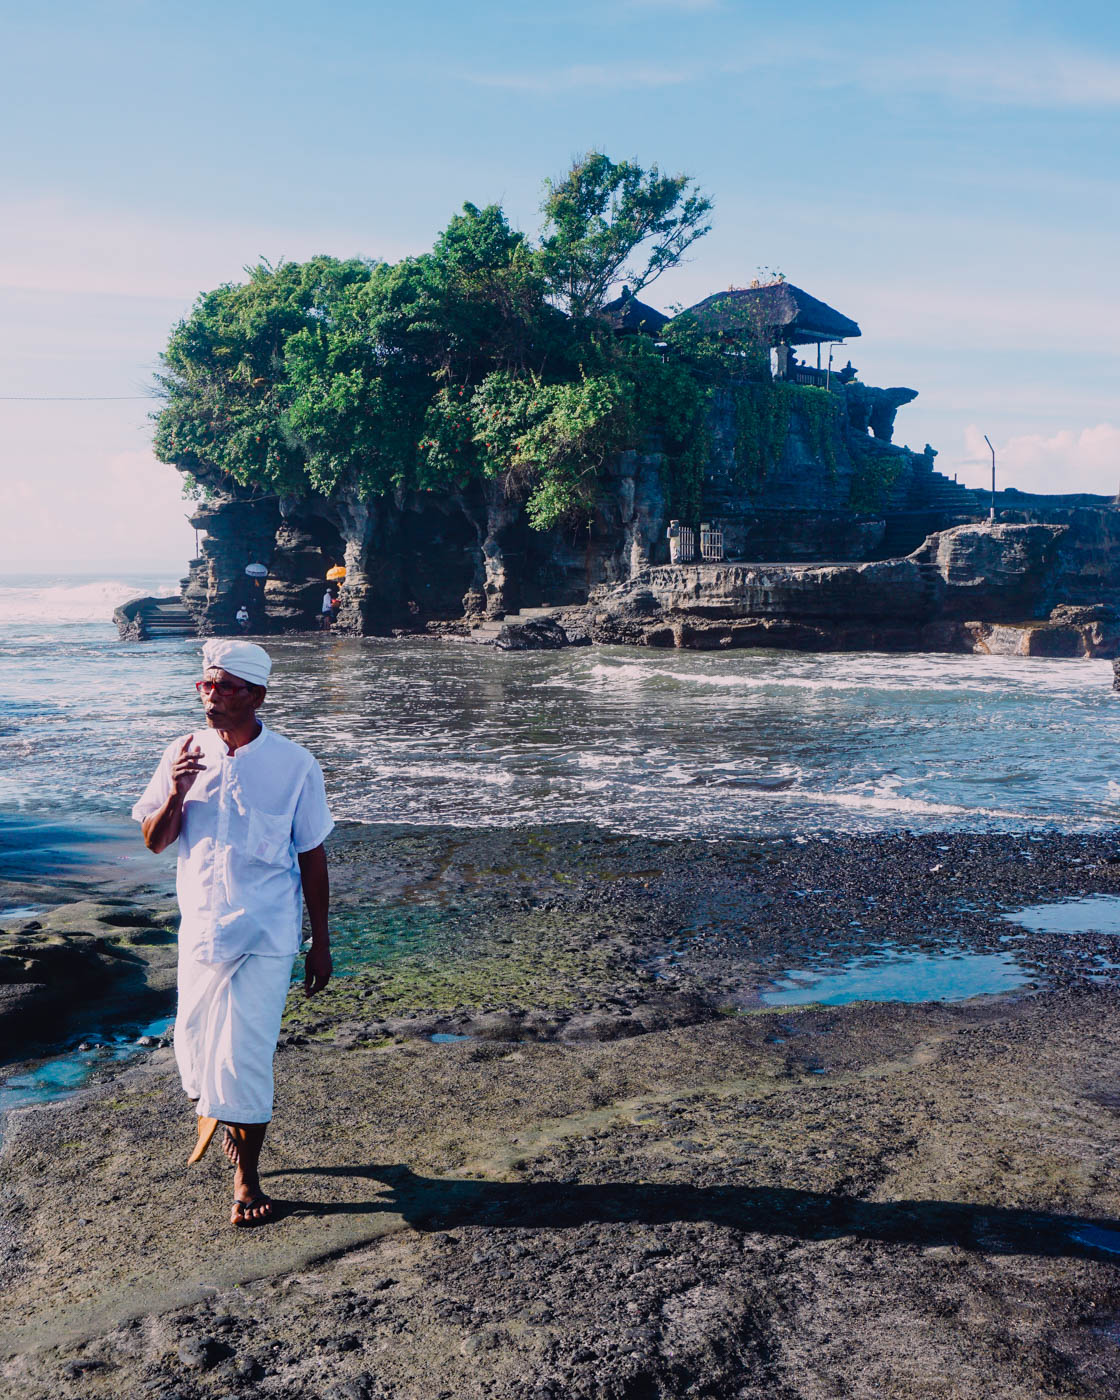 Tanah Lot - The Bali Hotel Guide I Bali Travel I Winter Sun I Indonesia I Travel #traveldestinations #traveltips #bali #indonesia-1